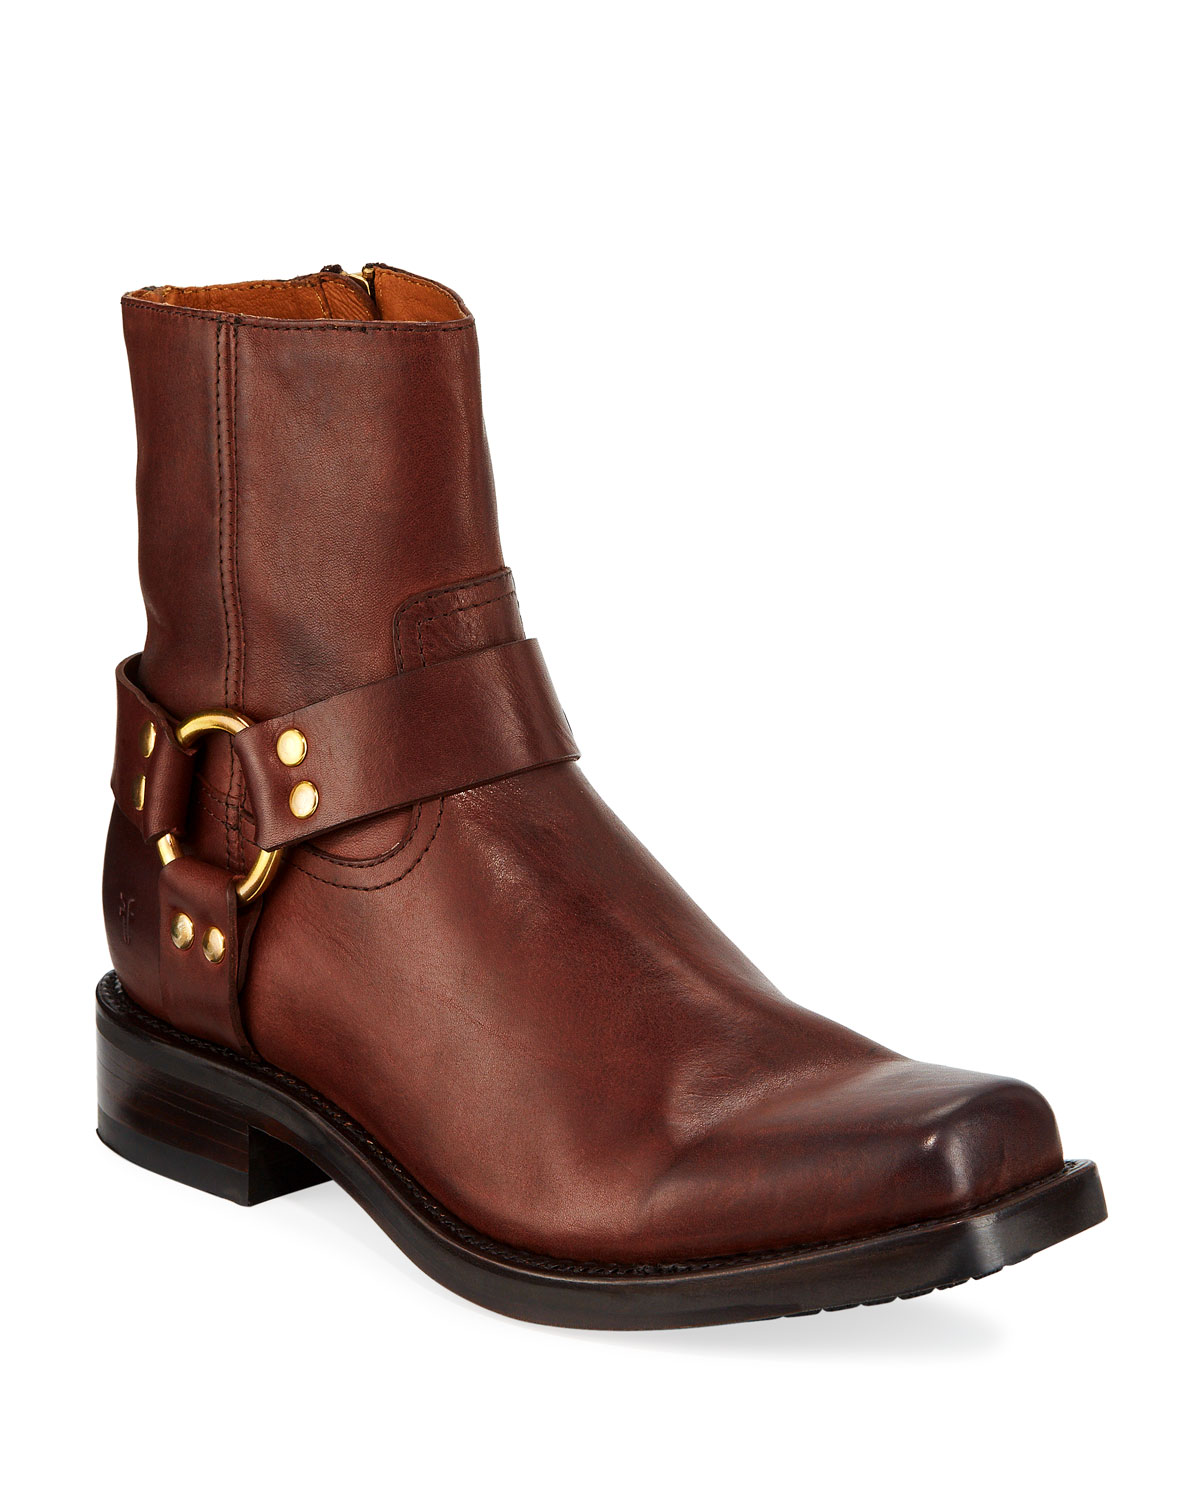 Frye Boots MEN'S CONWAY LEATHER HARNESS BOOTS